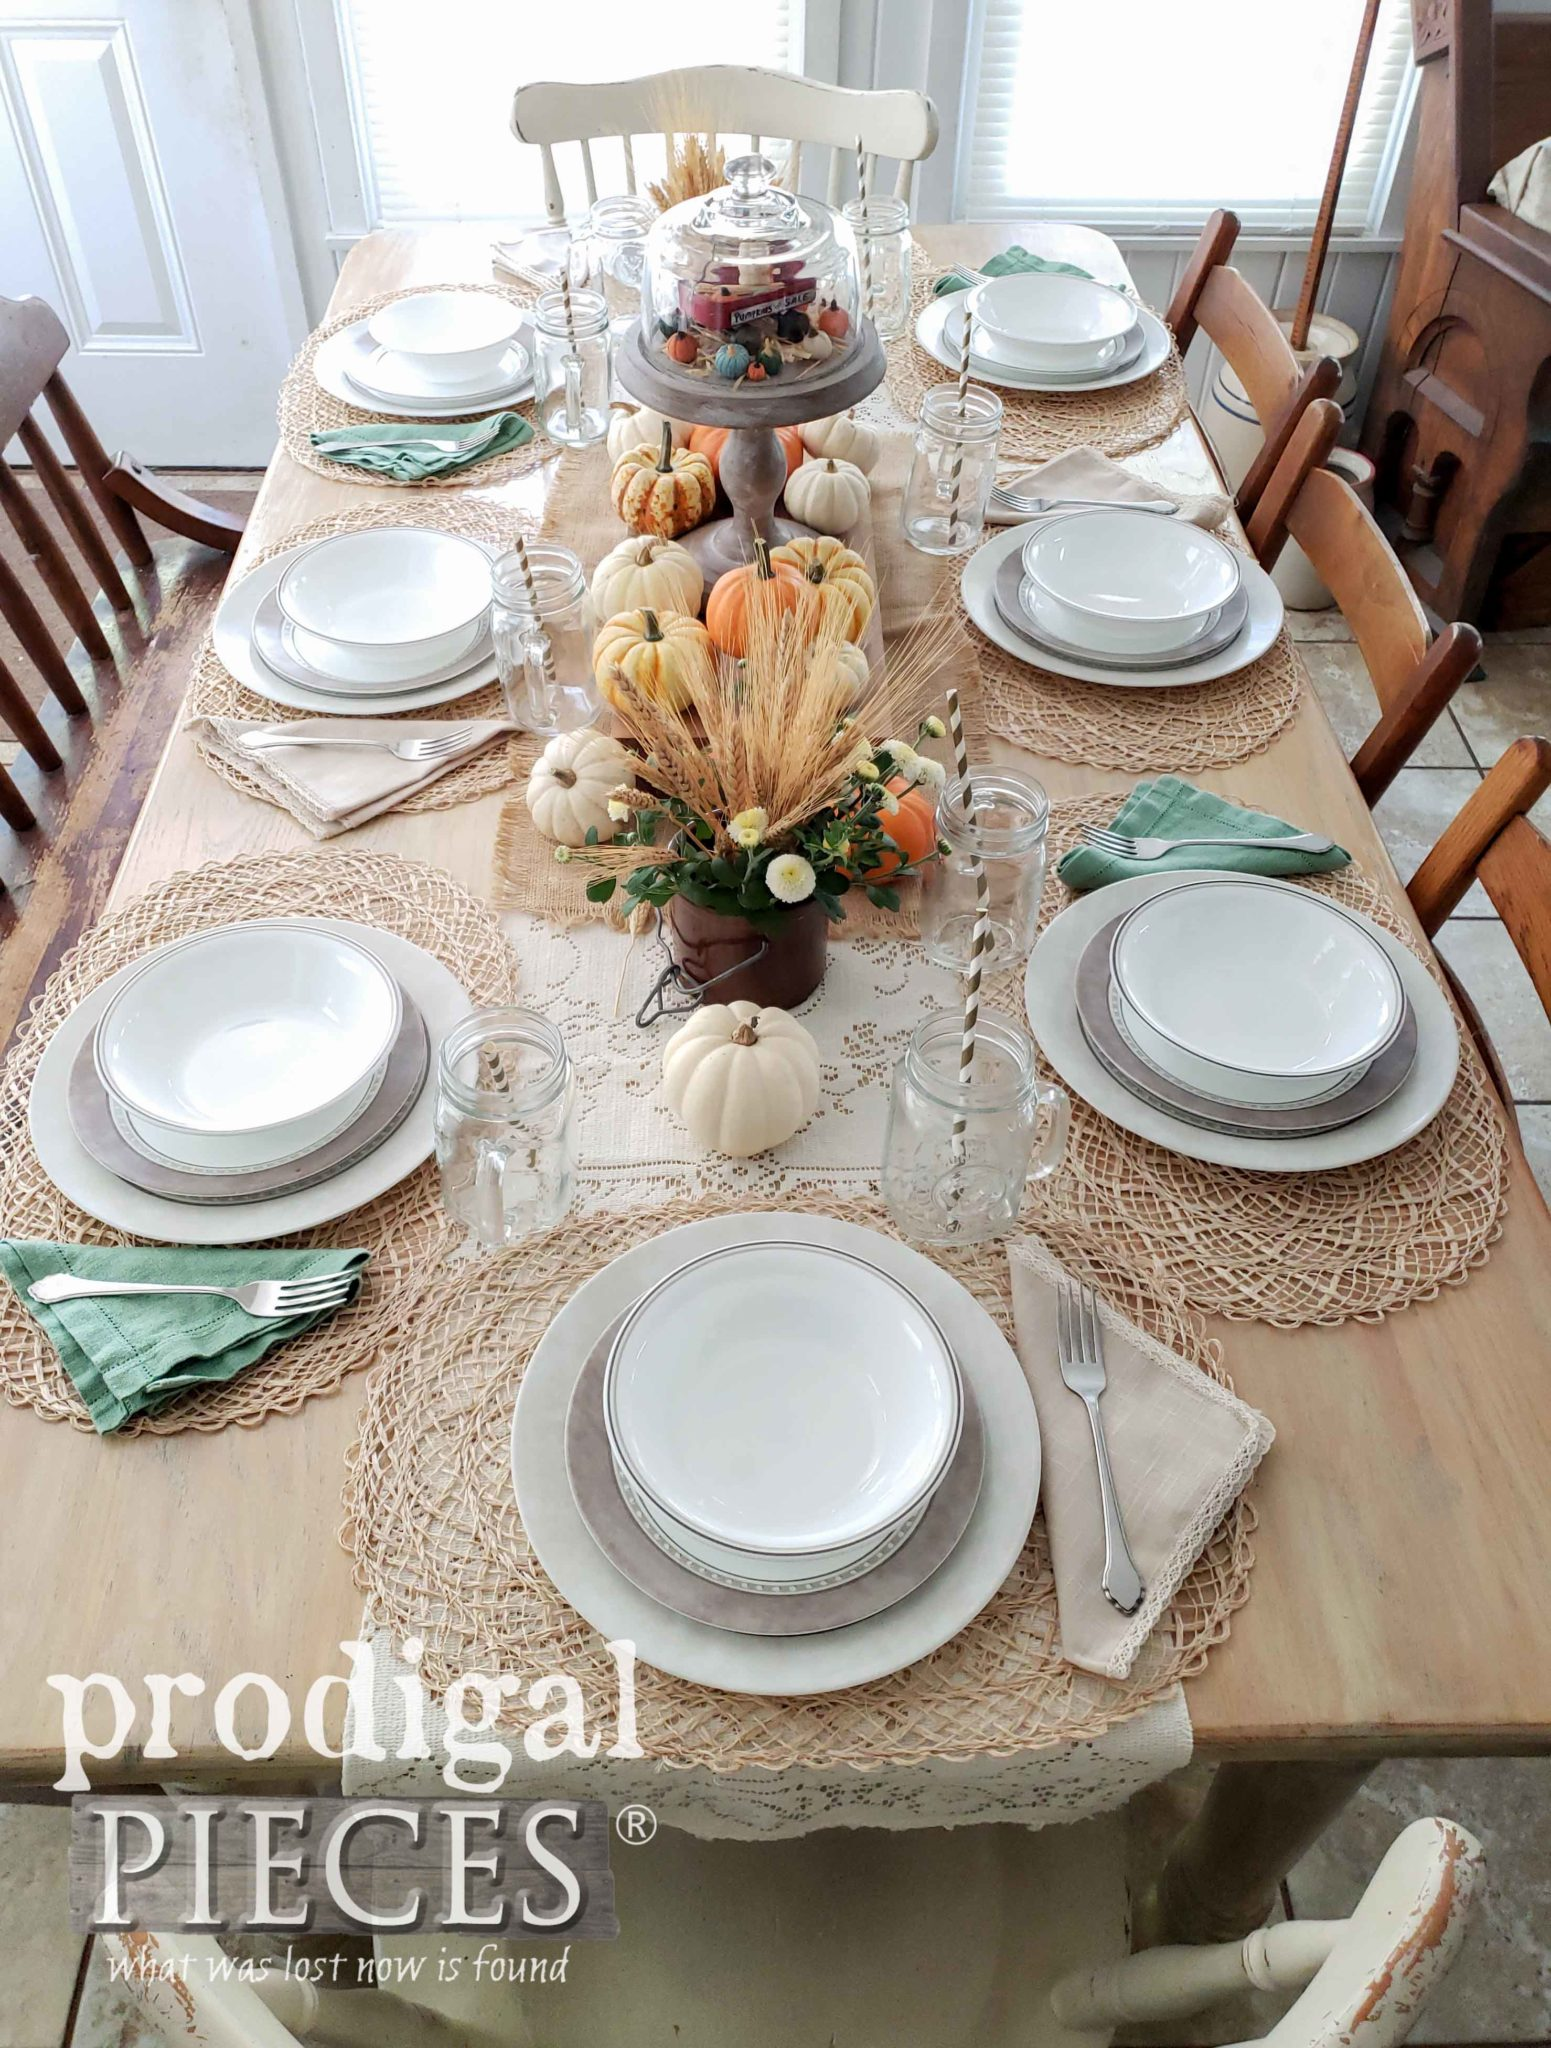 Farmhouse Autumn Tablescape with Natural Elements by Larissa of Prodigal Pieces | prodigalpieces.com